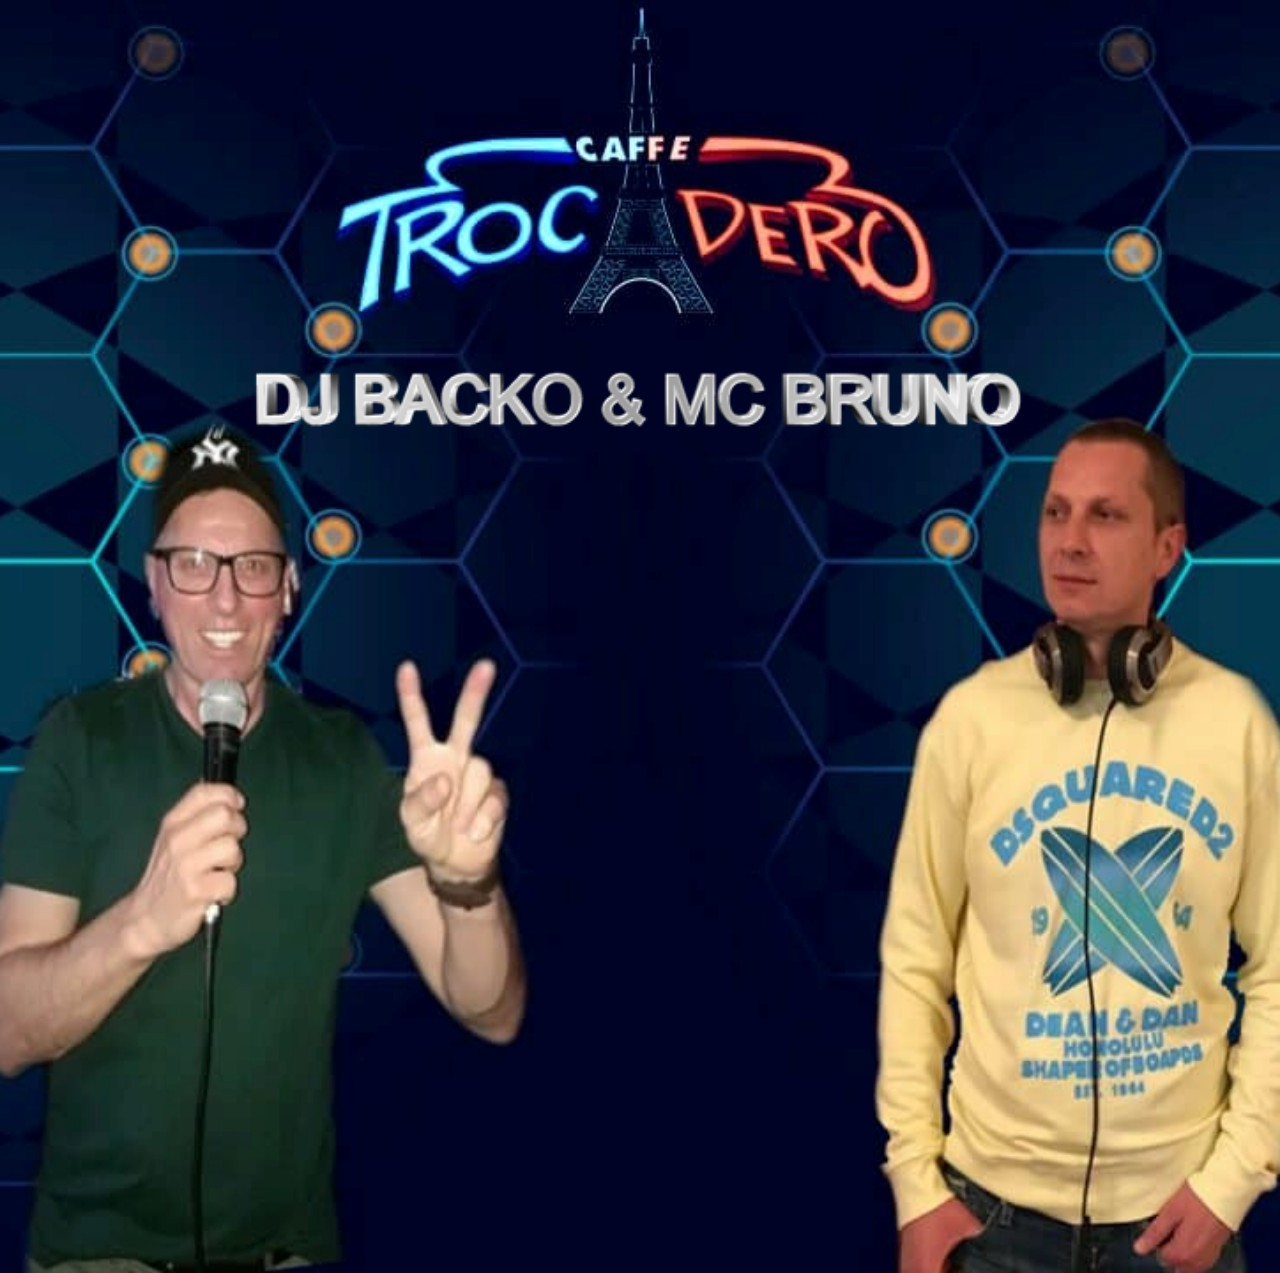 DJ Backo